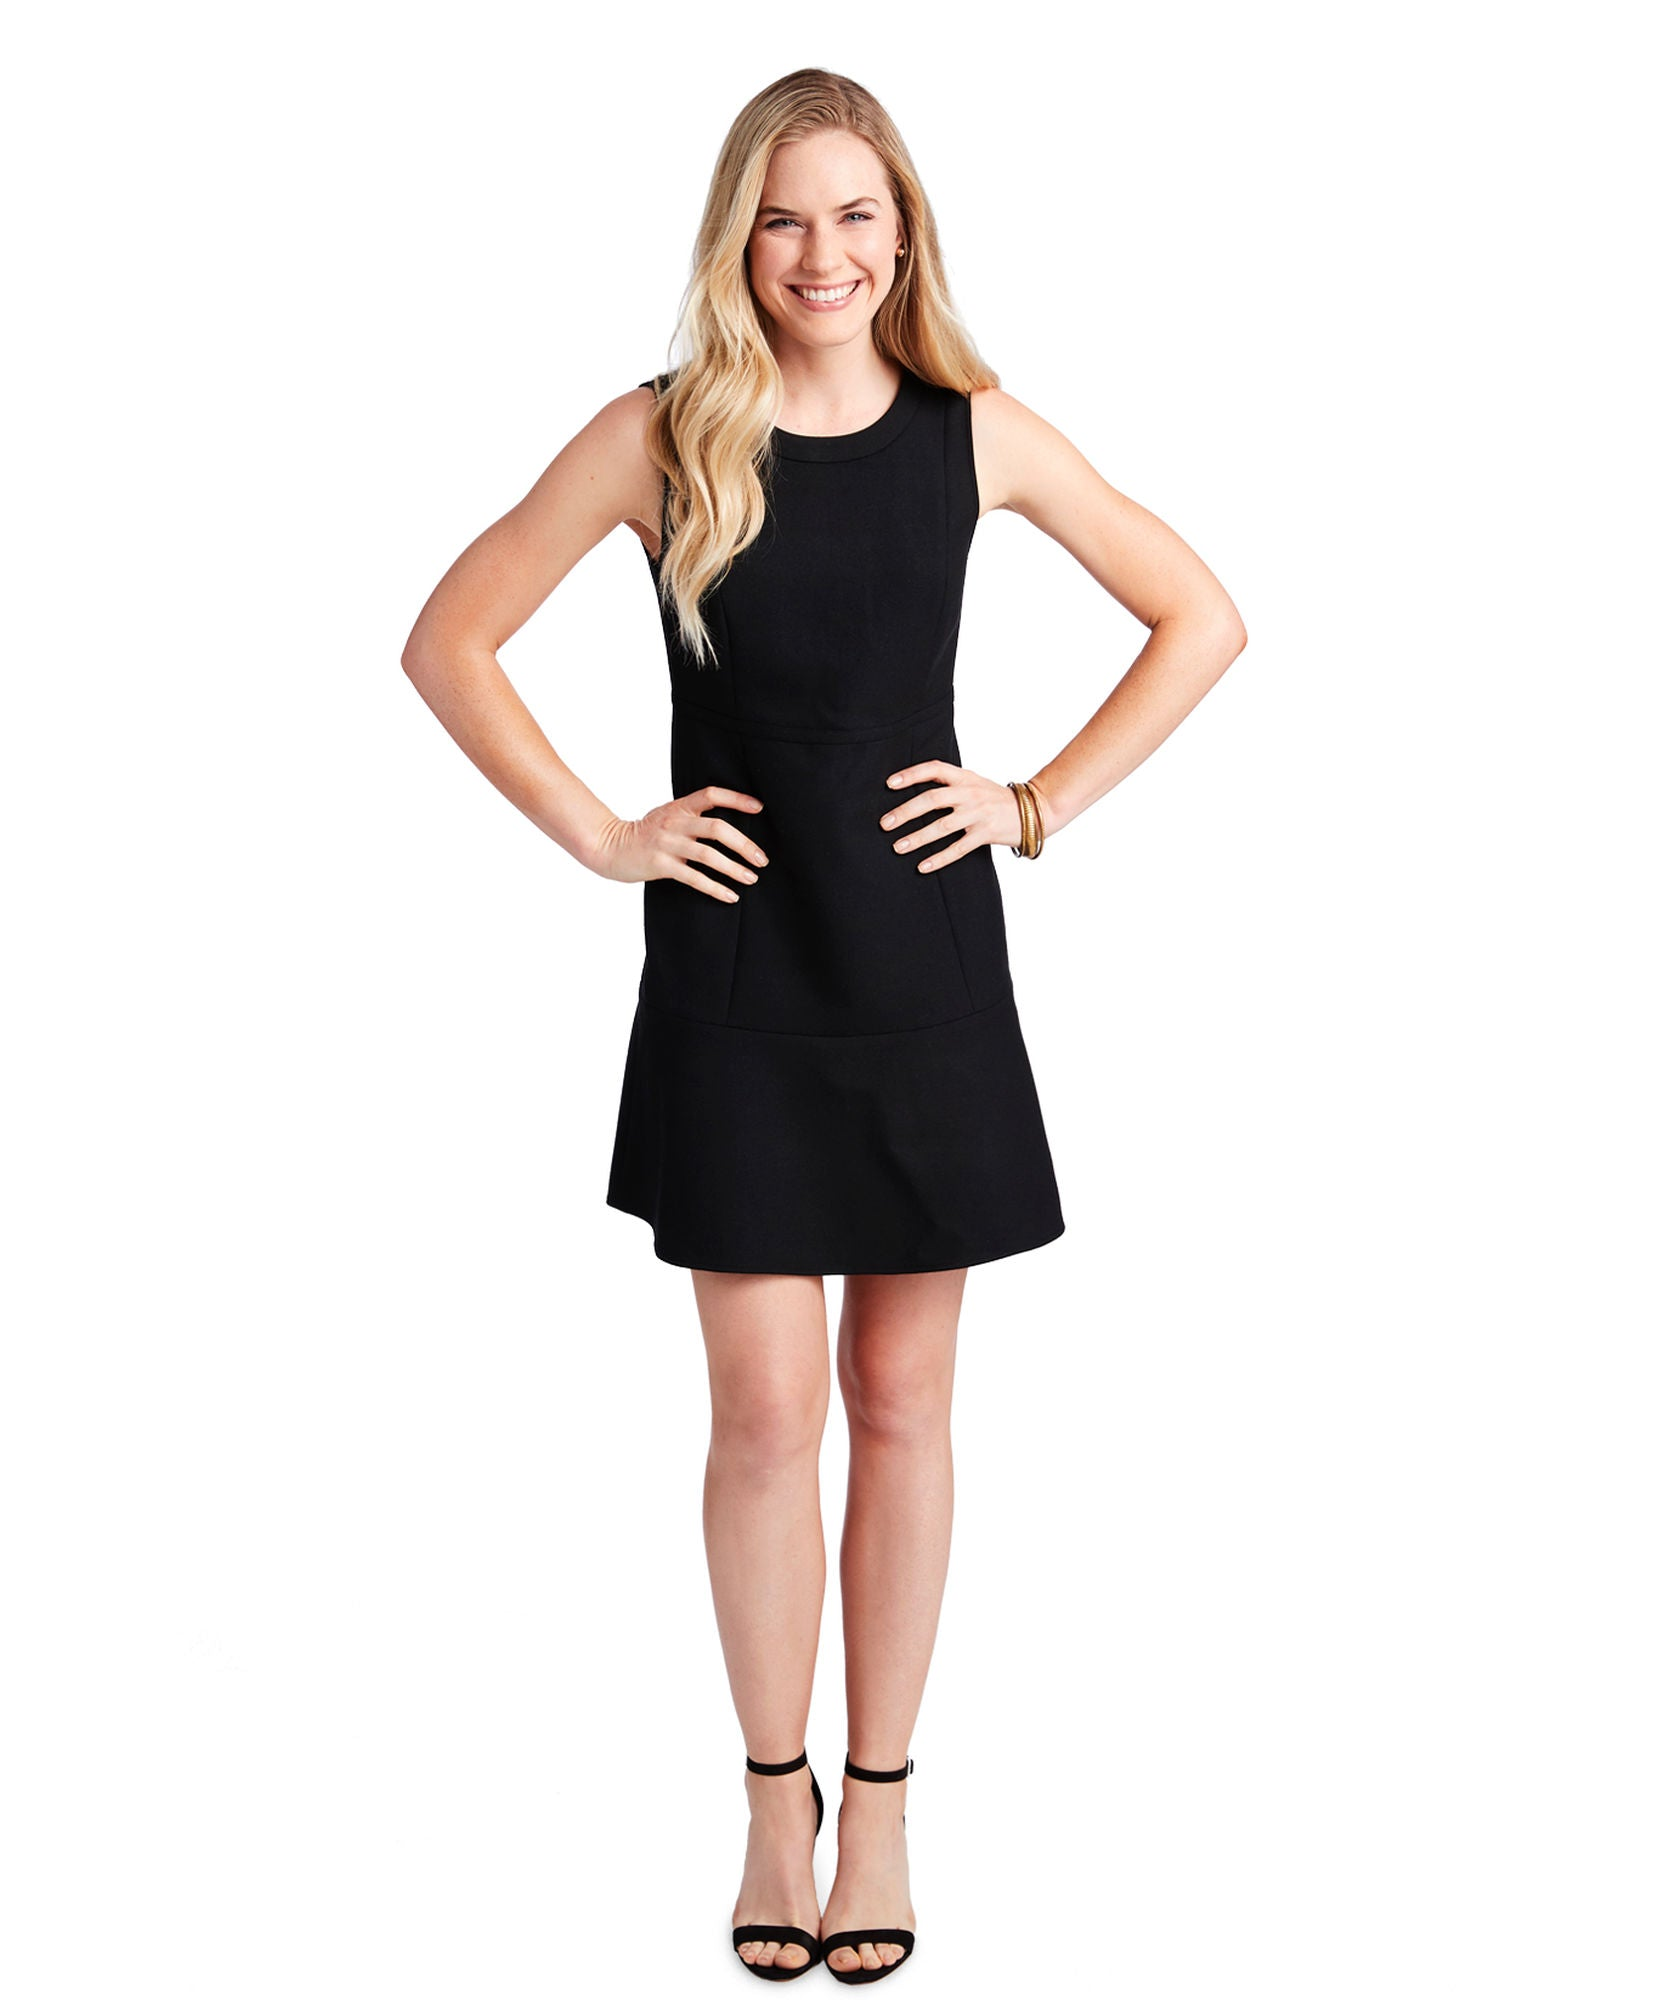 Vineyard Vines Sleeveless Fit & Flare Waisted Knit Dress - Jet Black Front